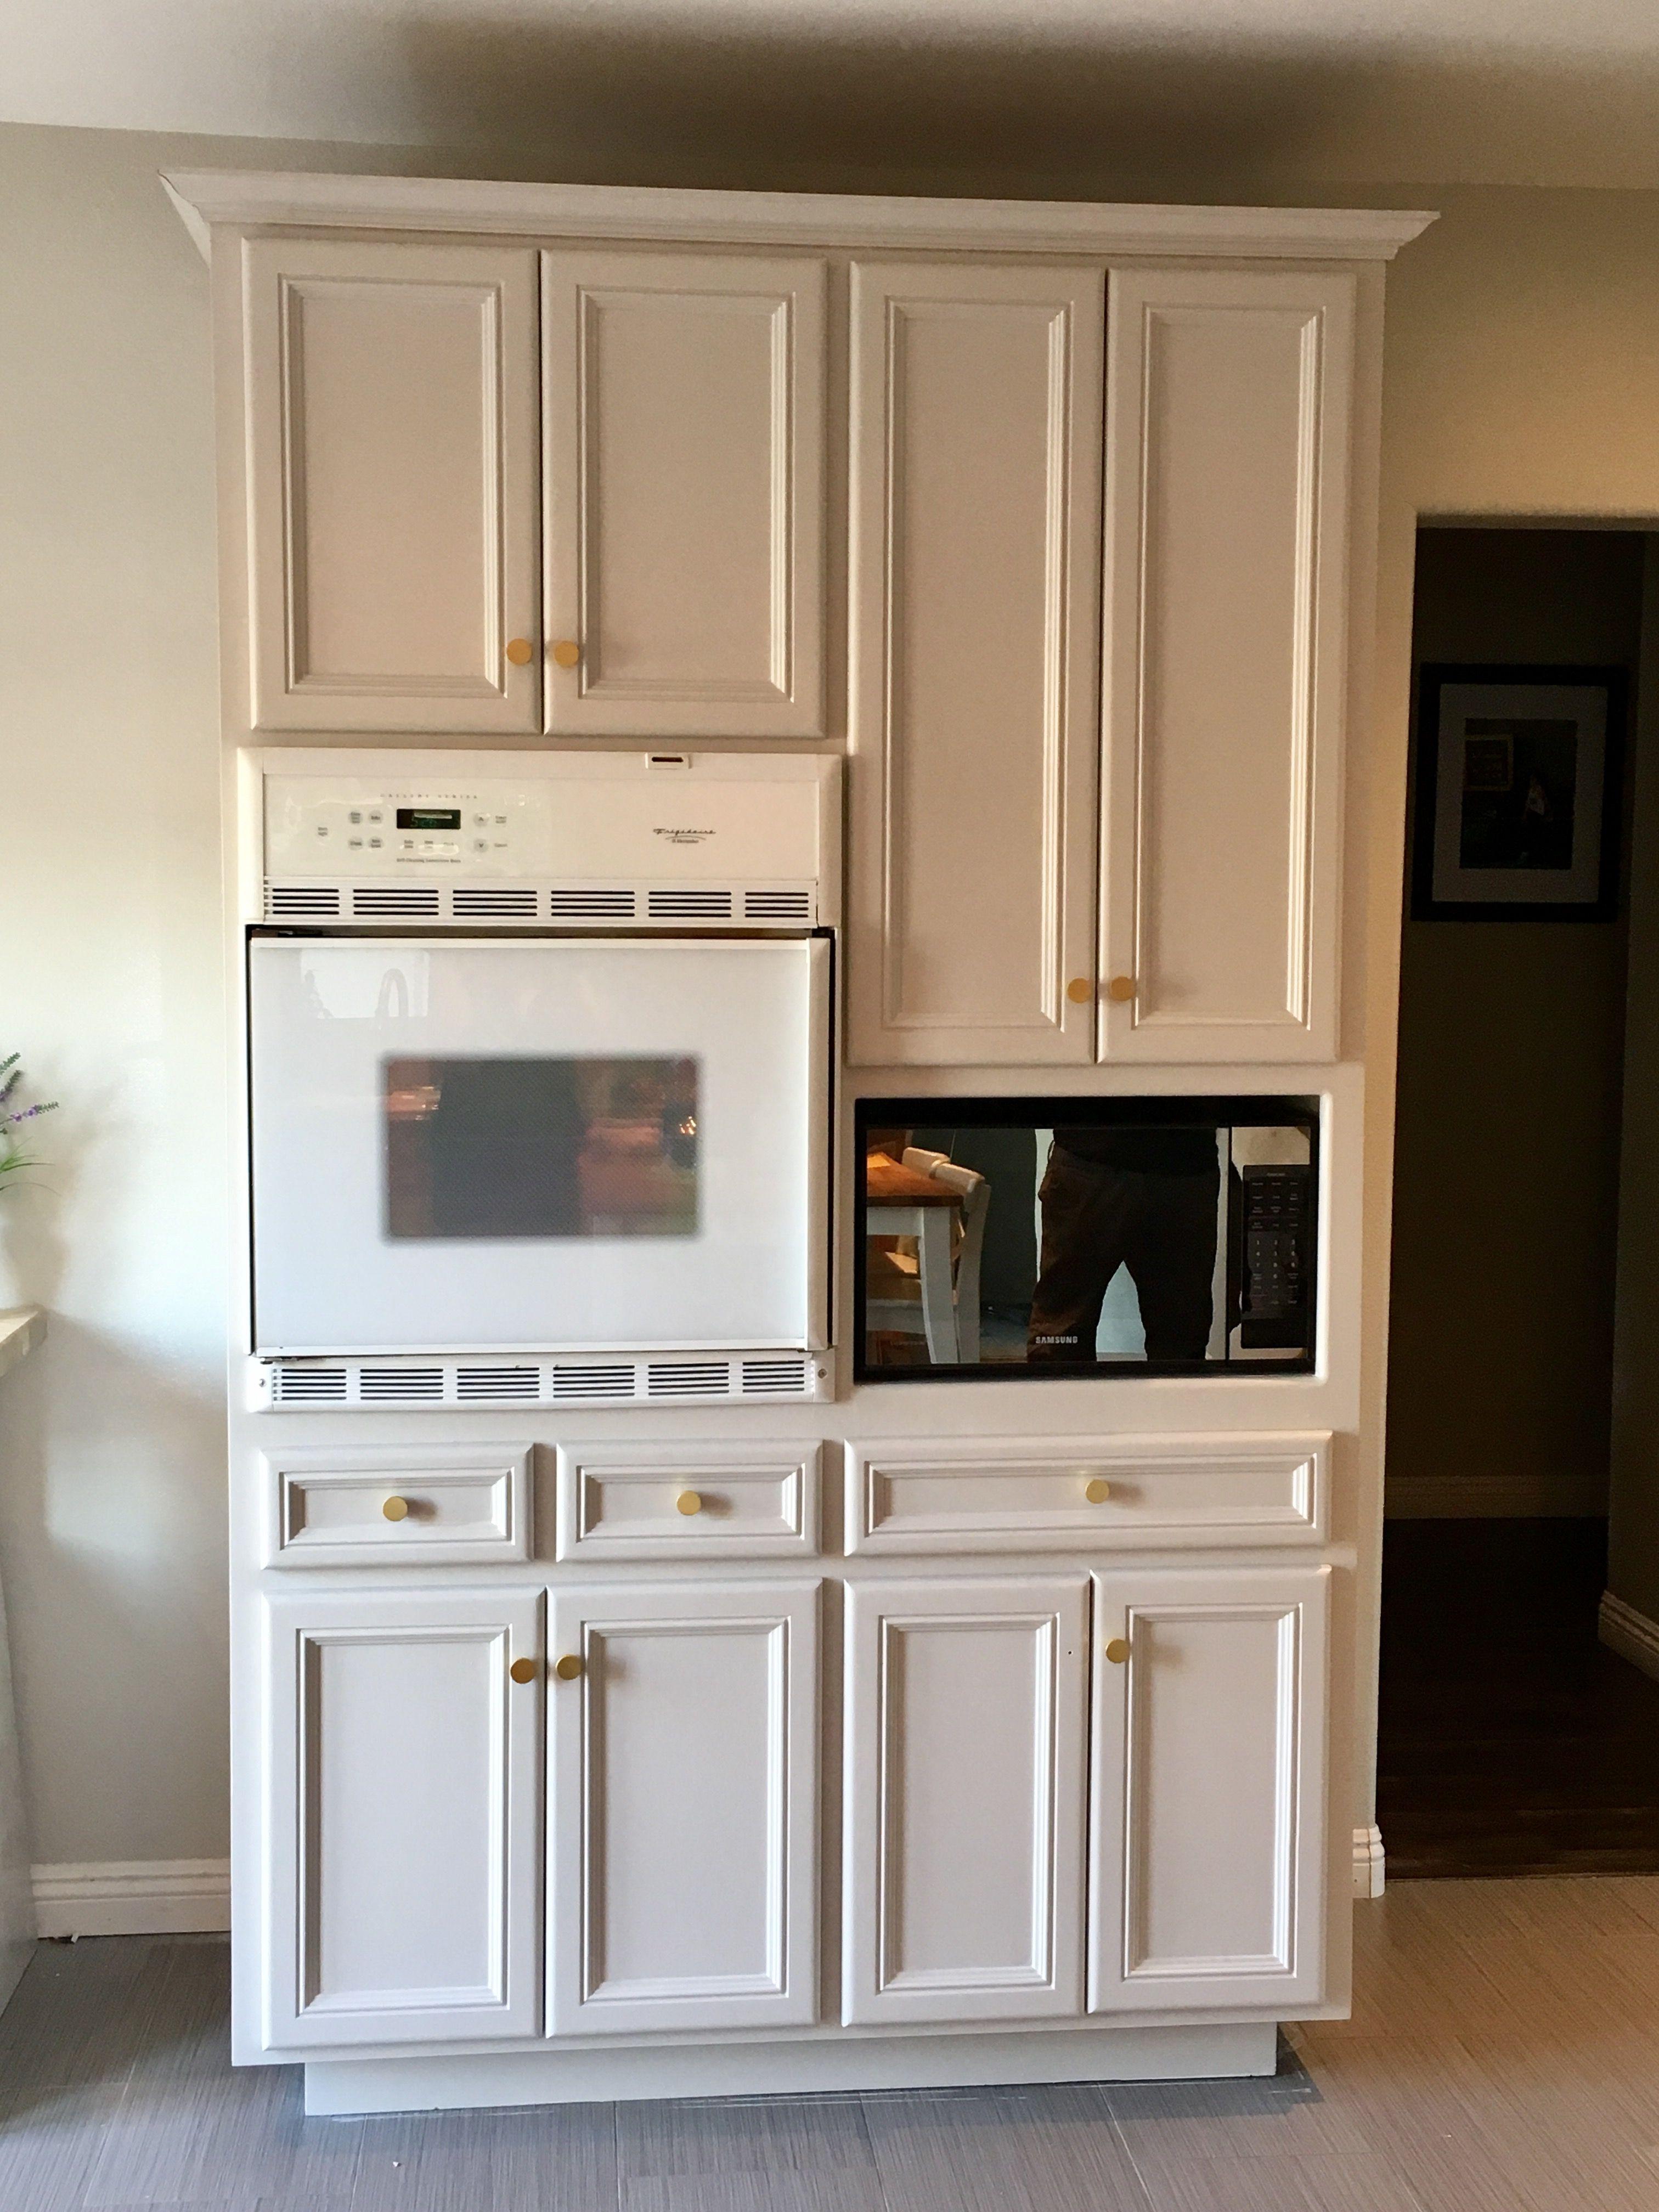 Painted Kitchen Cabinet Using Valspar Cabinet Paint In Foggy Mirror Semi Gloss Finish Hardware Is Thr Painting Kitchen Cabinets Kitchen Cabinets Kitchen Paint